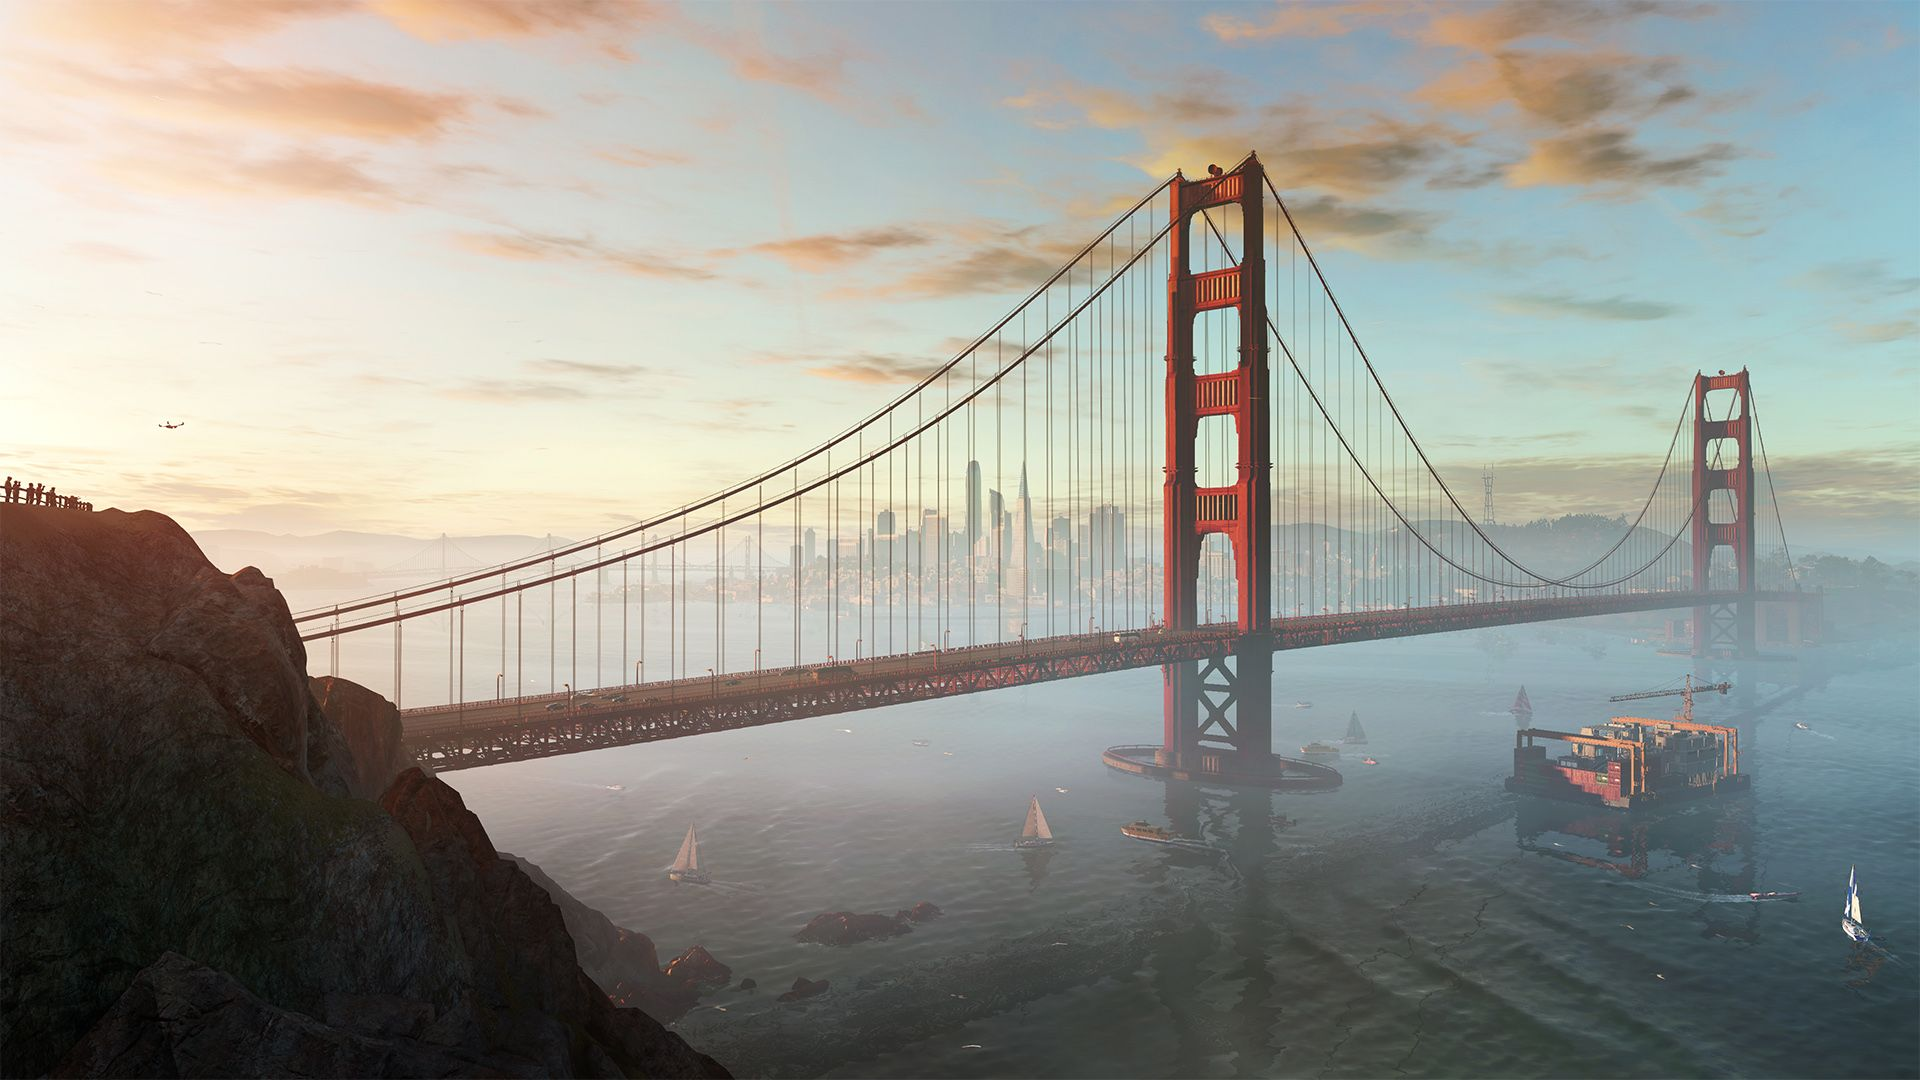 Watch Dogs 2 review Video games, Golden gate bridge, Image